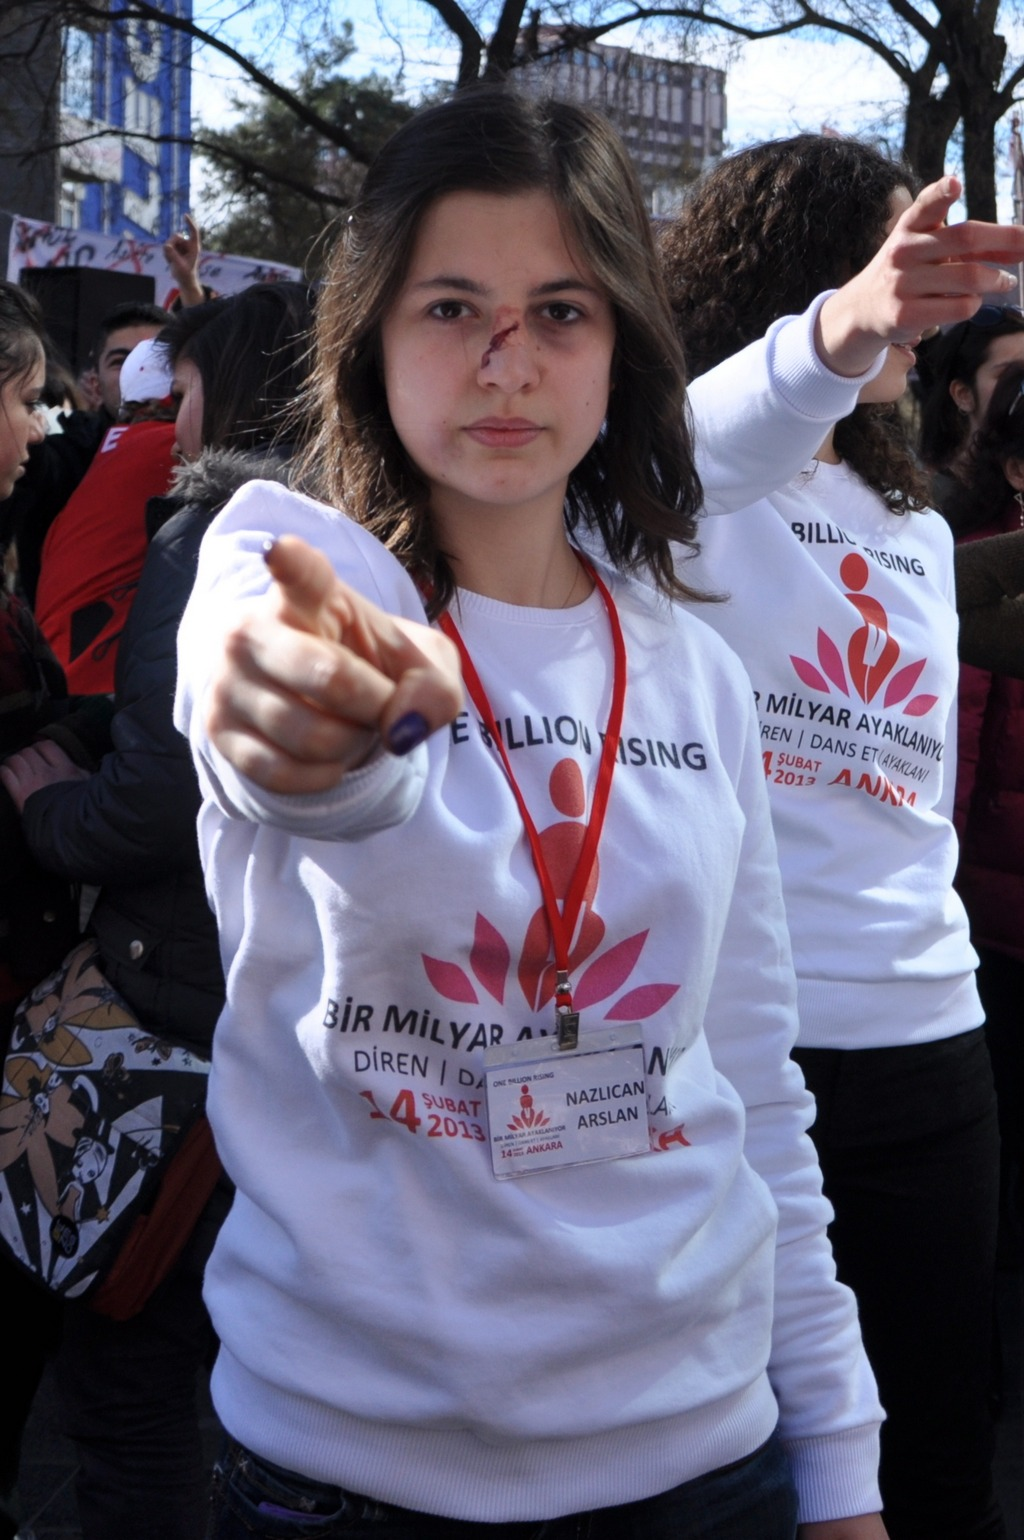 galeri-2213-one-billion-rising-23.jpg